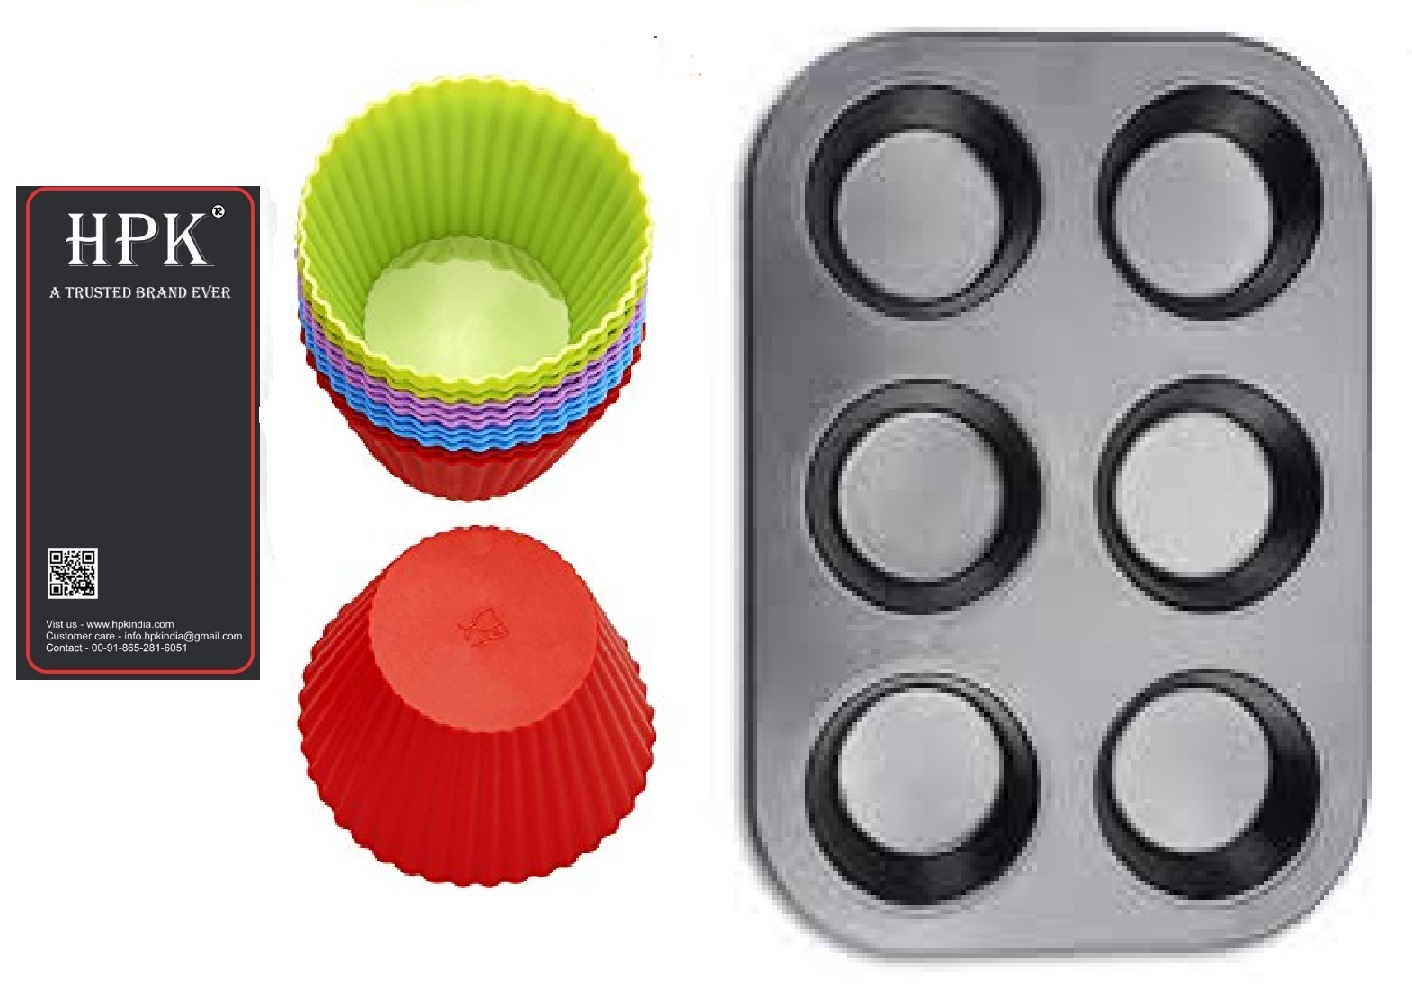 hpk-brsuh  silicon molds muffin tray  round  molds Set